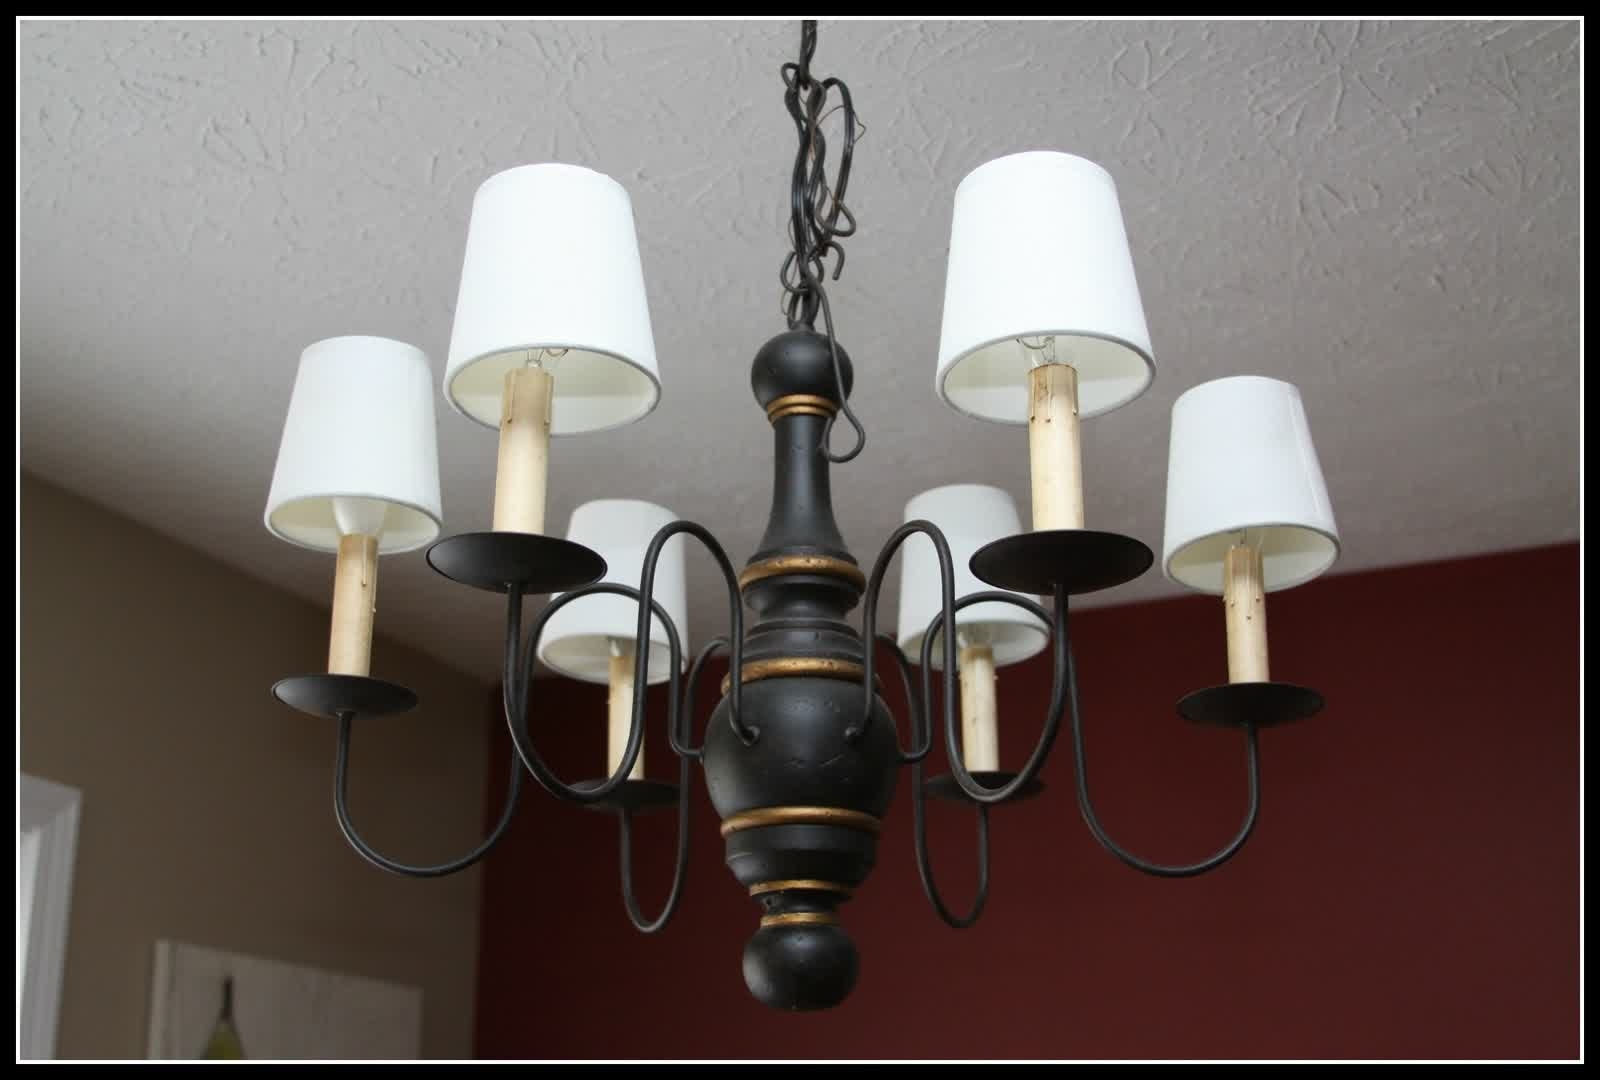 Chandelier New York Man Isis Popular Now Jerry Sandusky Moved Out With Chandelier Lampshades (Image 11 of 25)